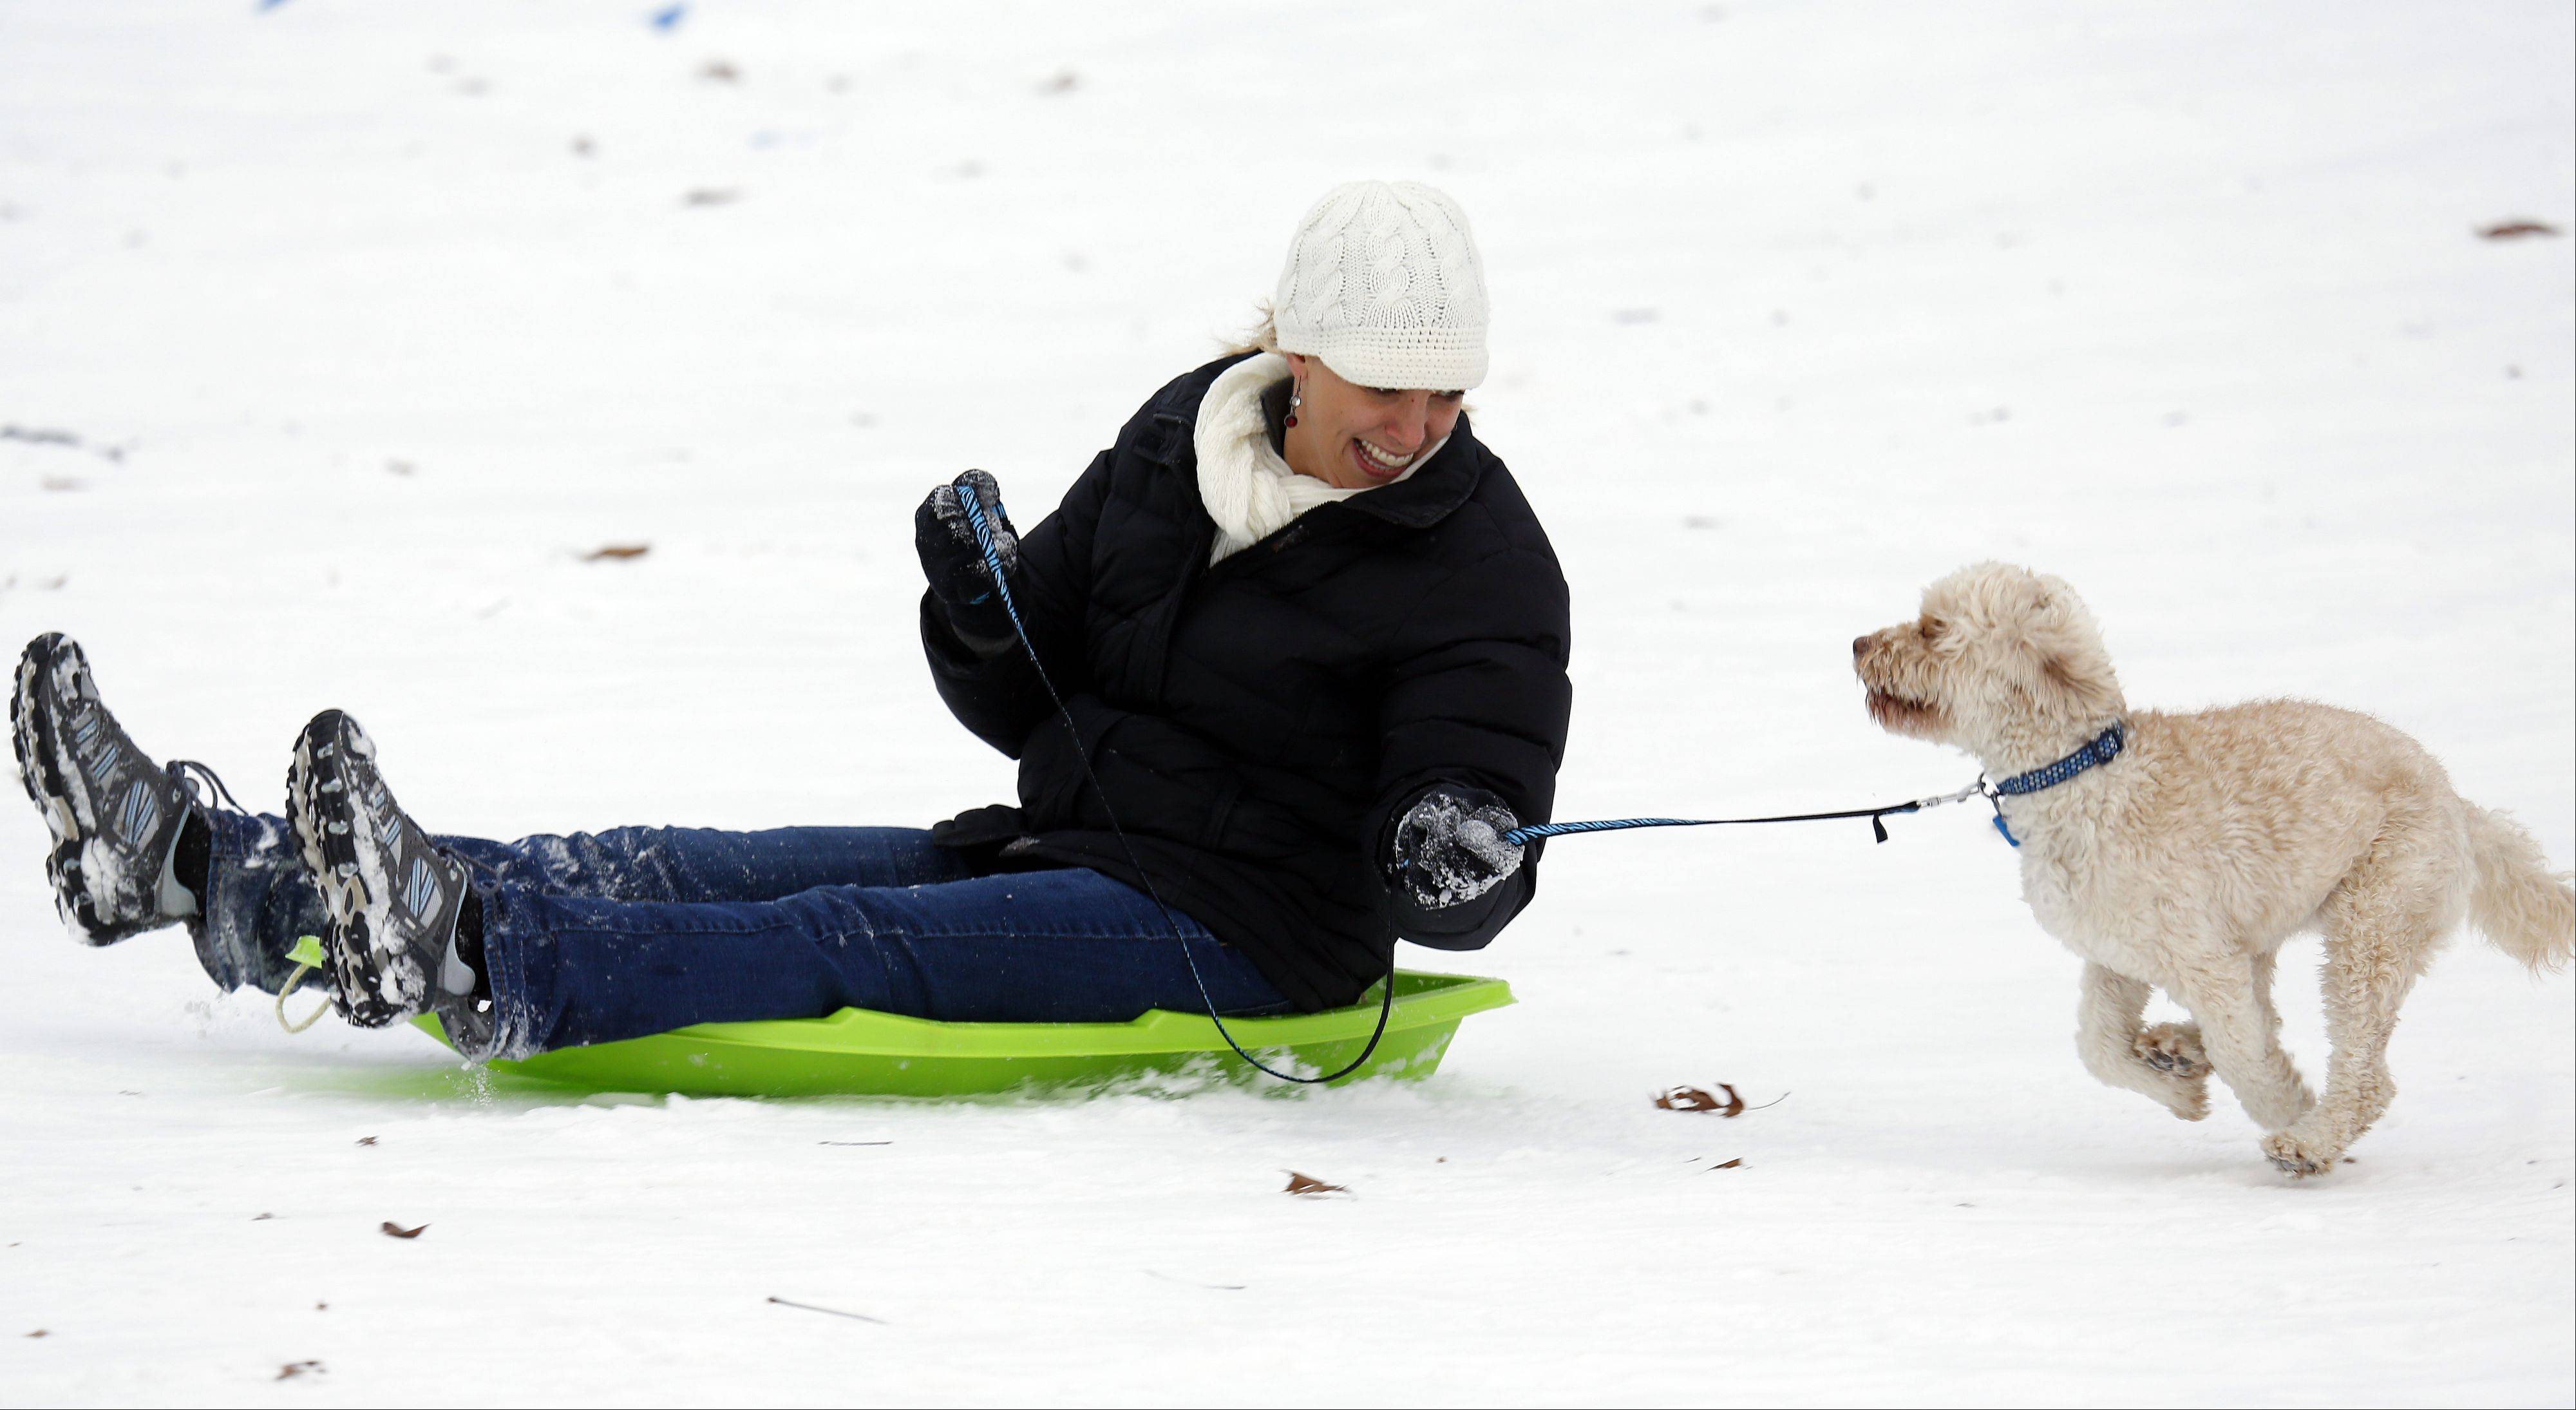 Bethany Donaldson, of Elgin, races down the hill with her dog Mandie, a golden doodle, while sledding at Wing Park in Elgin Thursday.